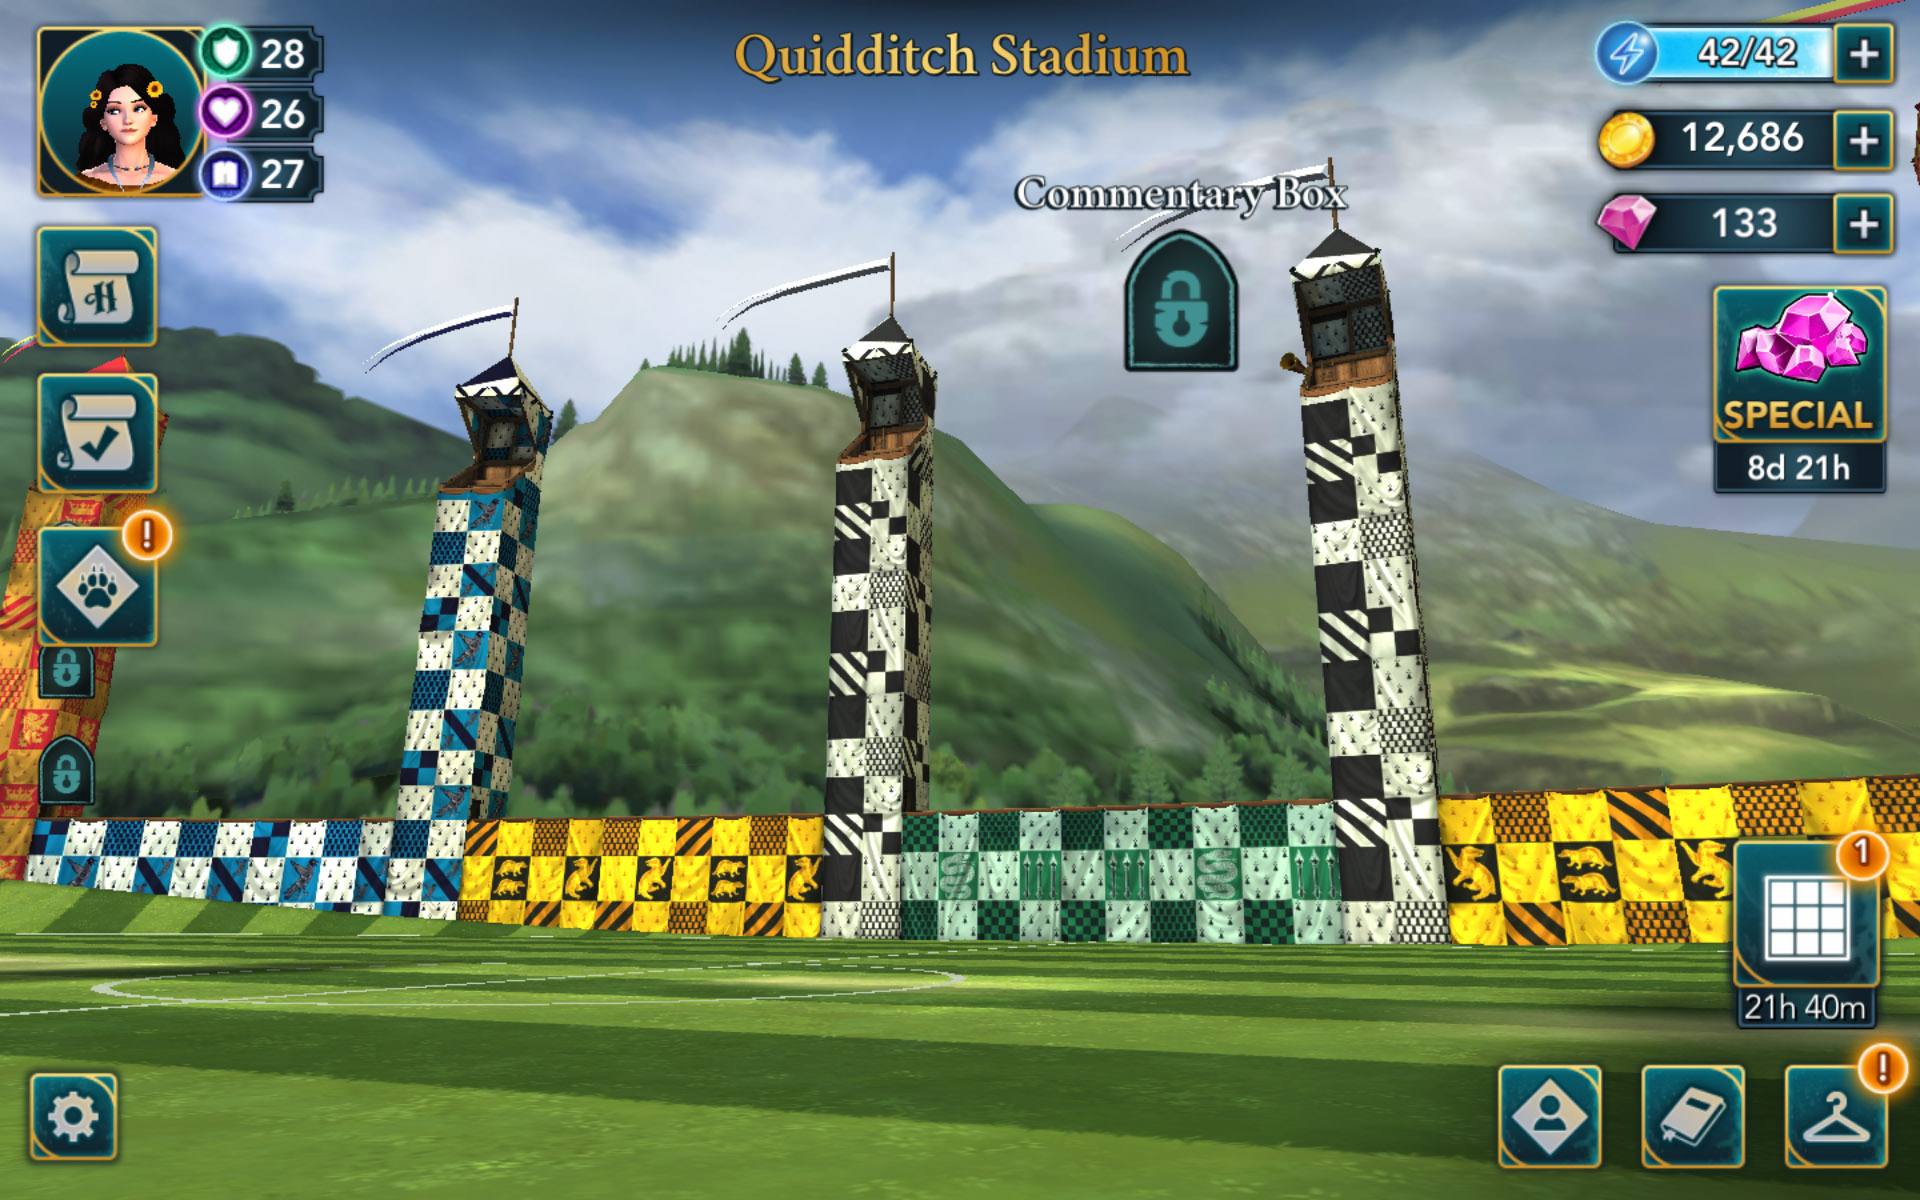 """A view of the Quidditch Stadium Commentary Box is seen in this screenshot from """"Harry Potter: Hogwarts Mystery""""."""